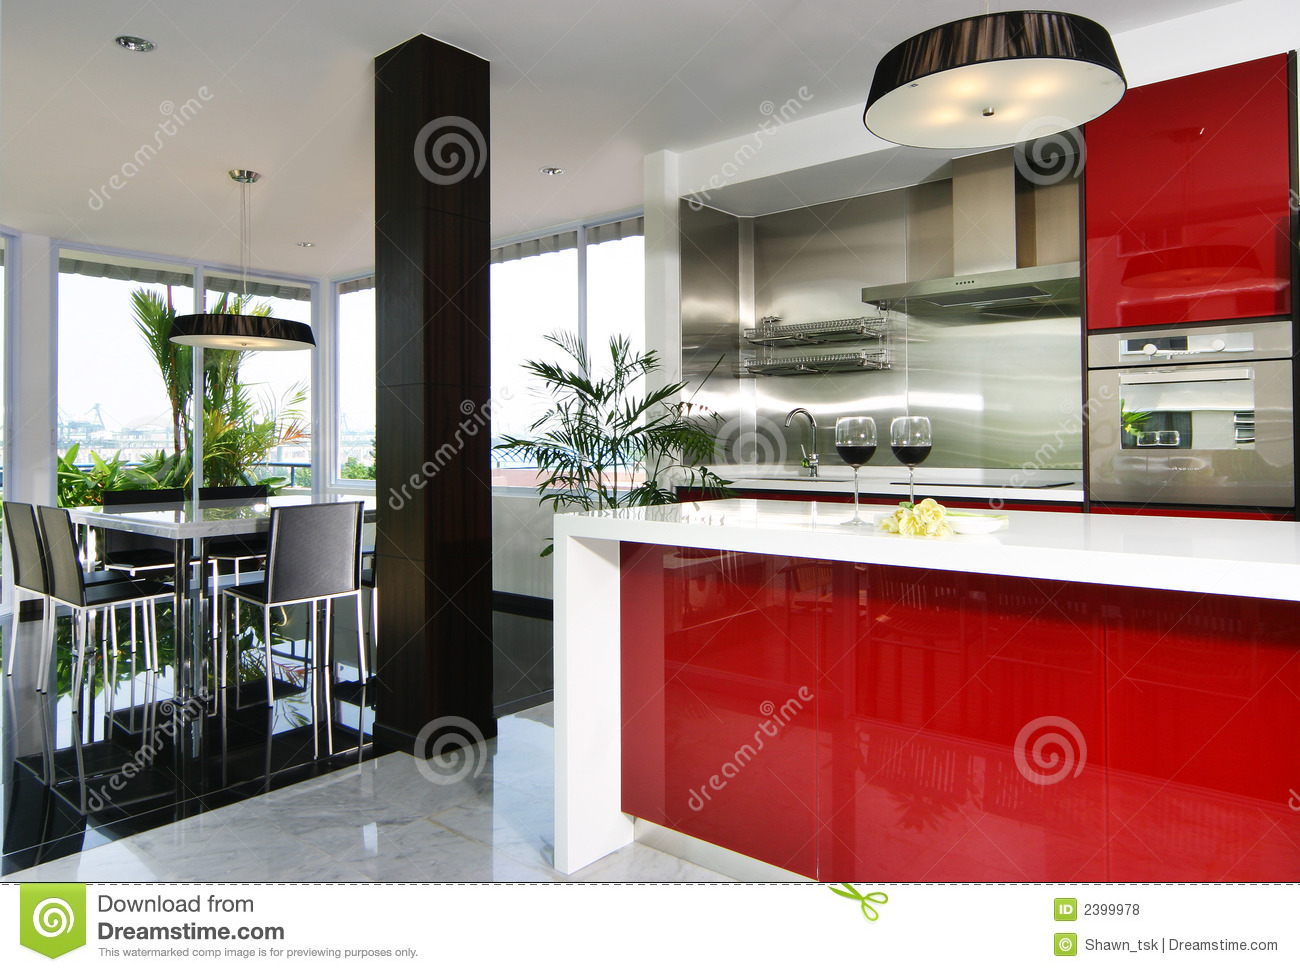 Interior design kitchen royalty free stock photos image 2399978 Free interior design